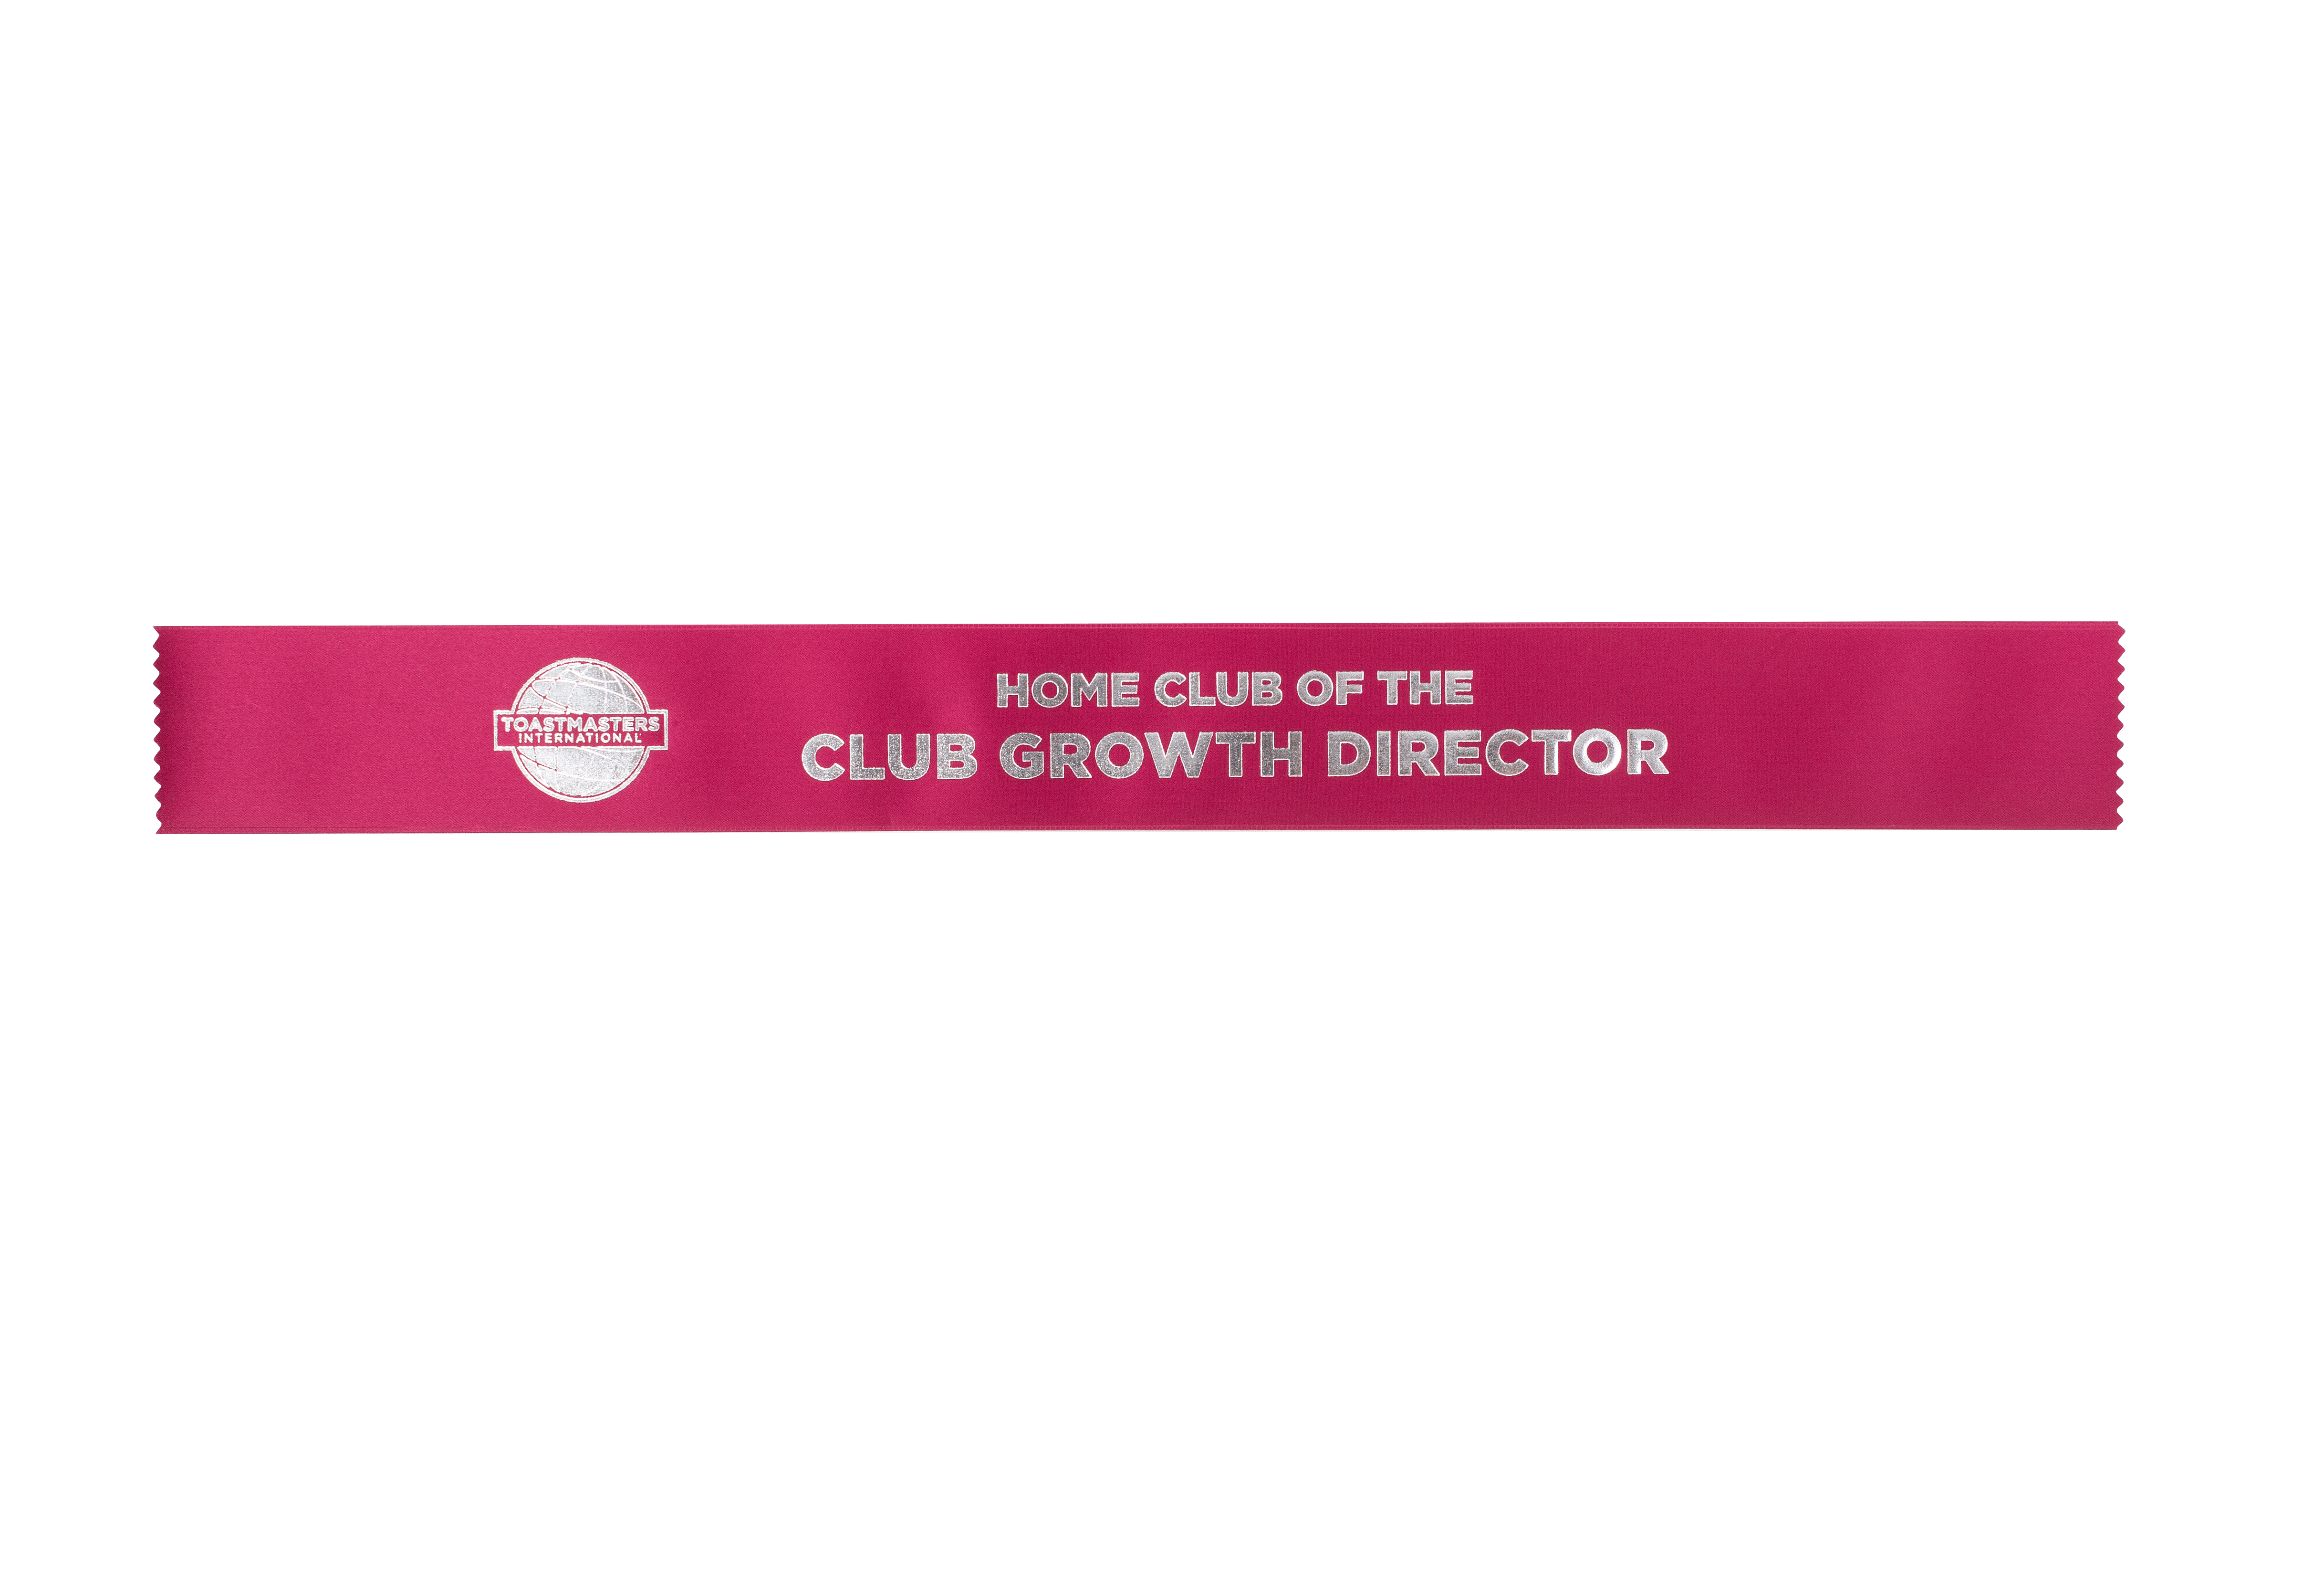 Home Club of the Club Growth Director Ribbon